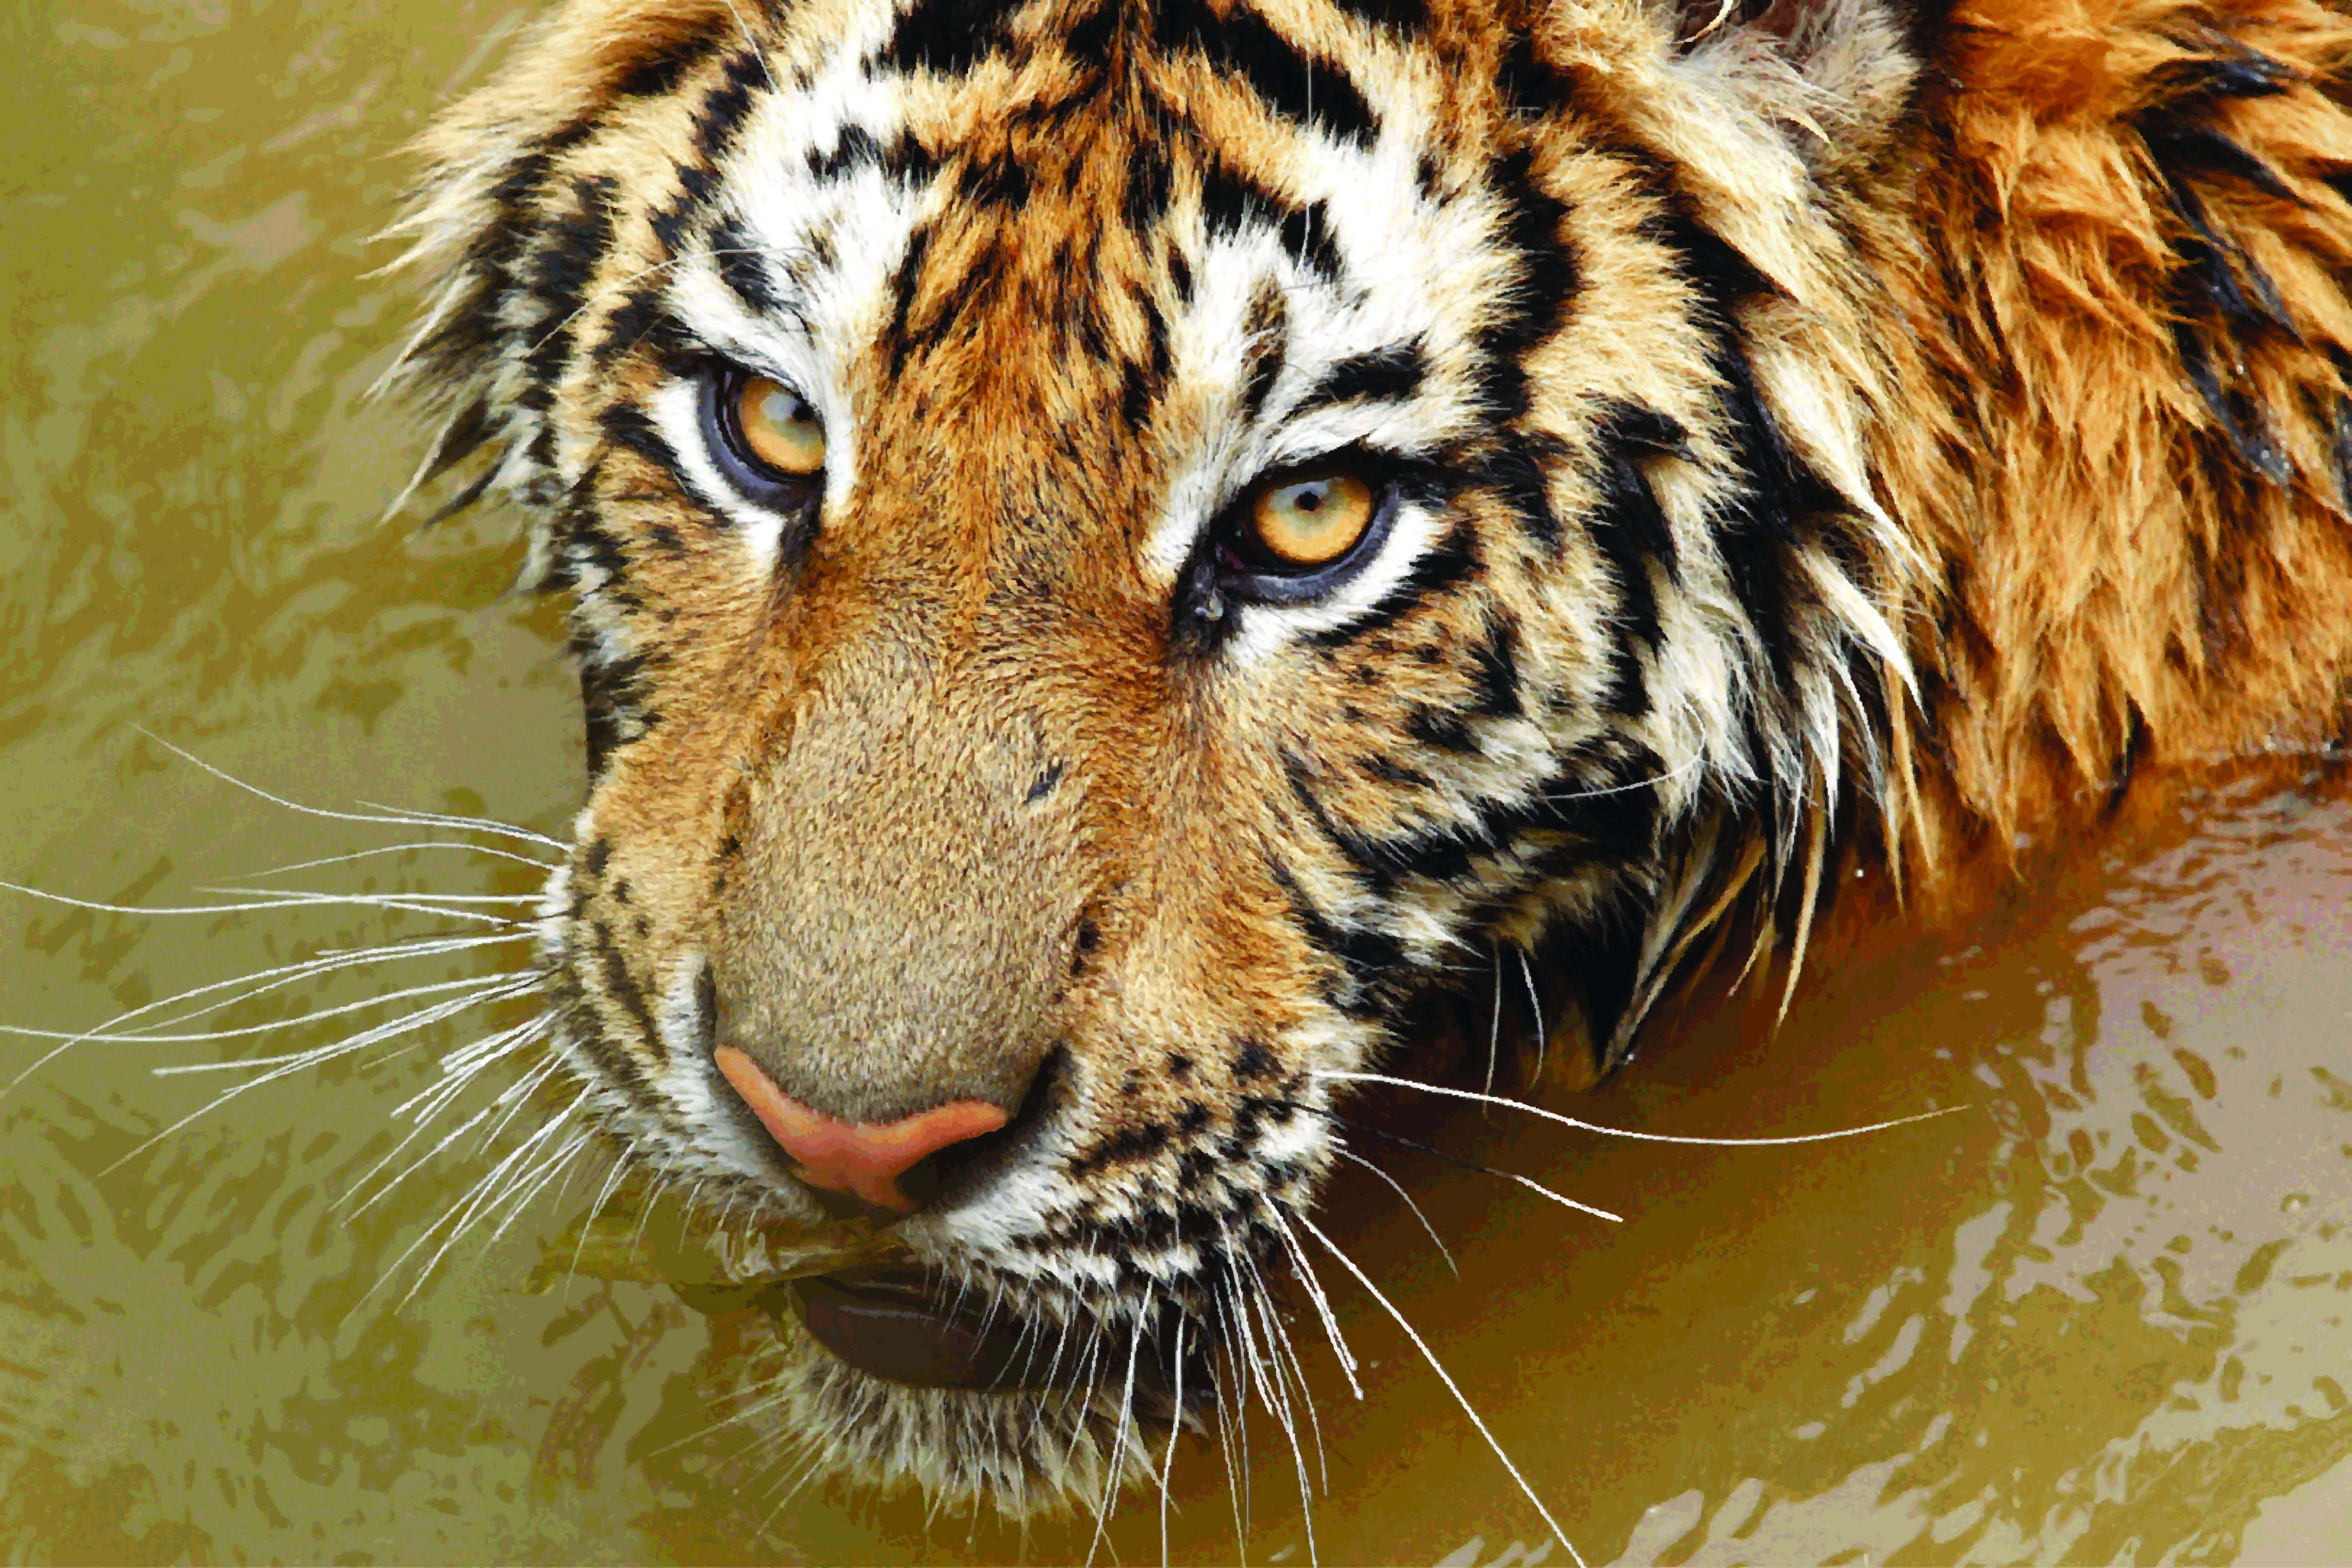 hunting tiger in water photos images wallpaper